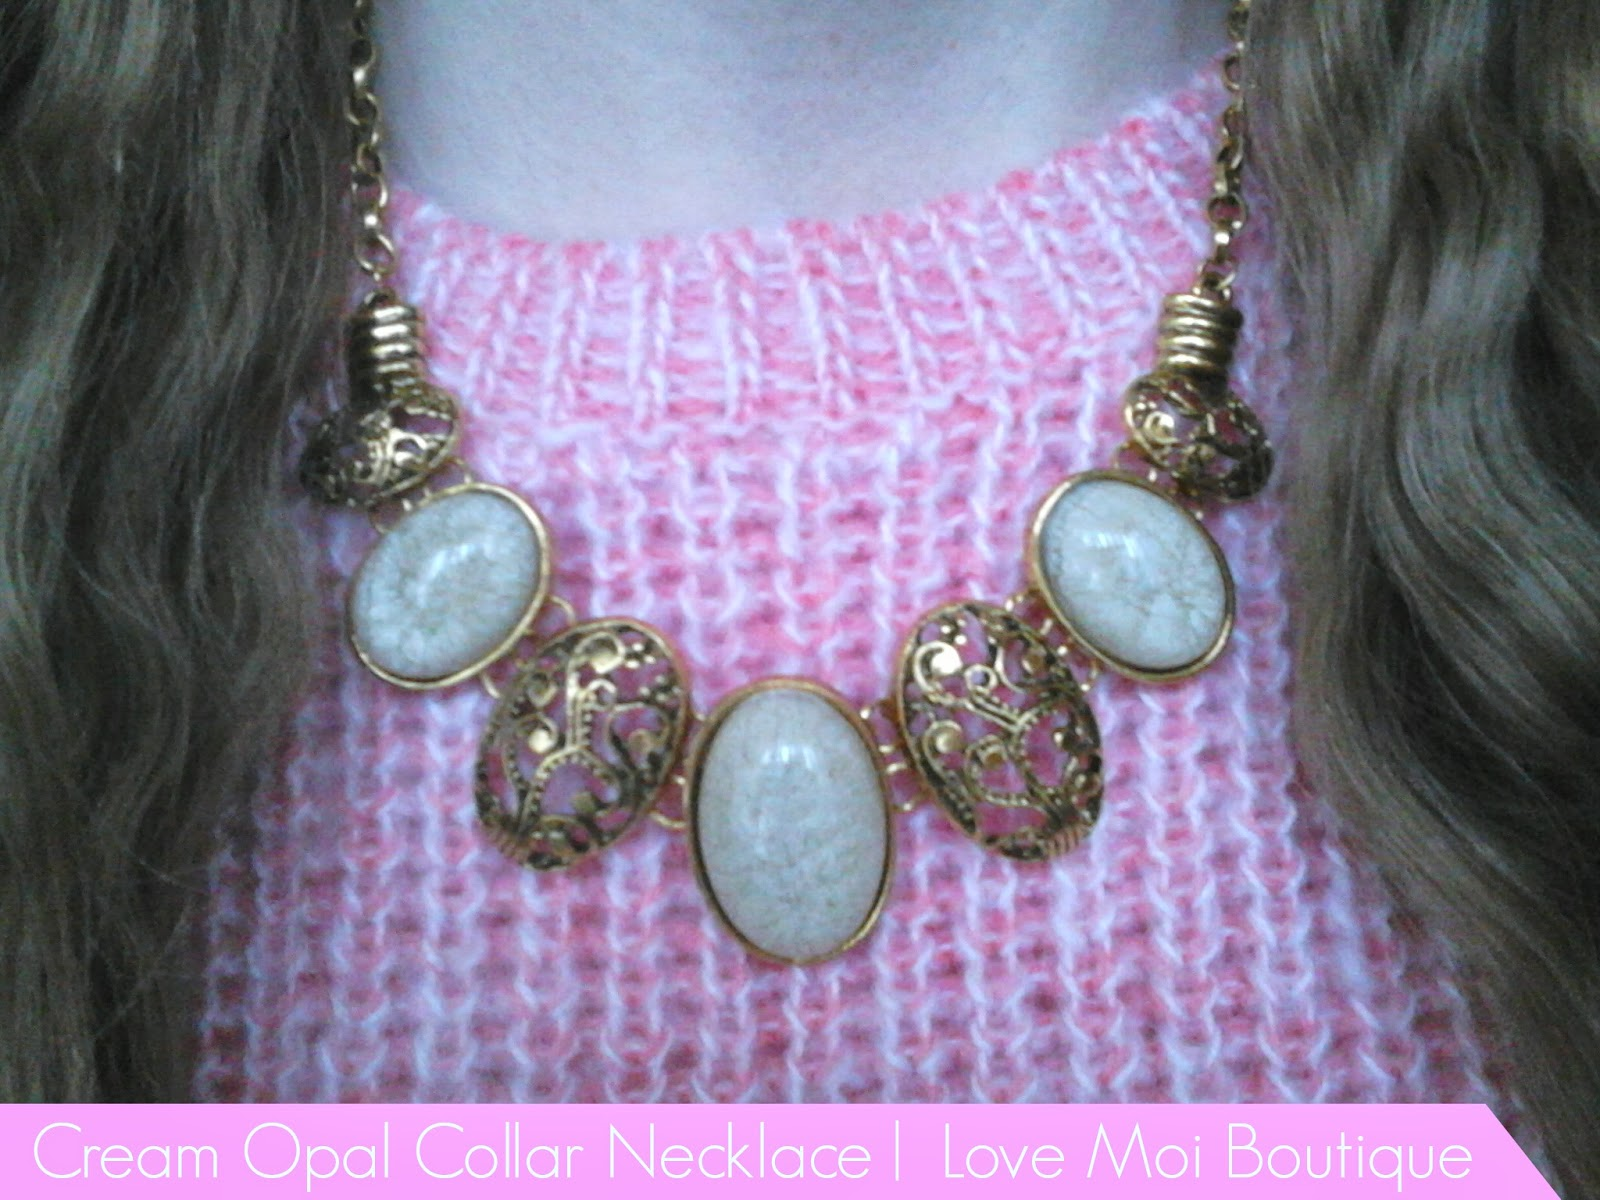 Cream Opal Collar Necklace